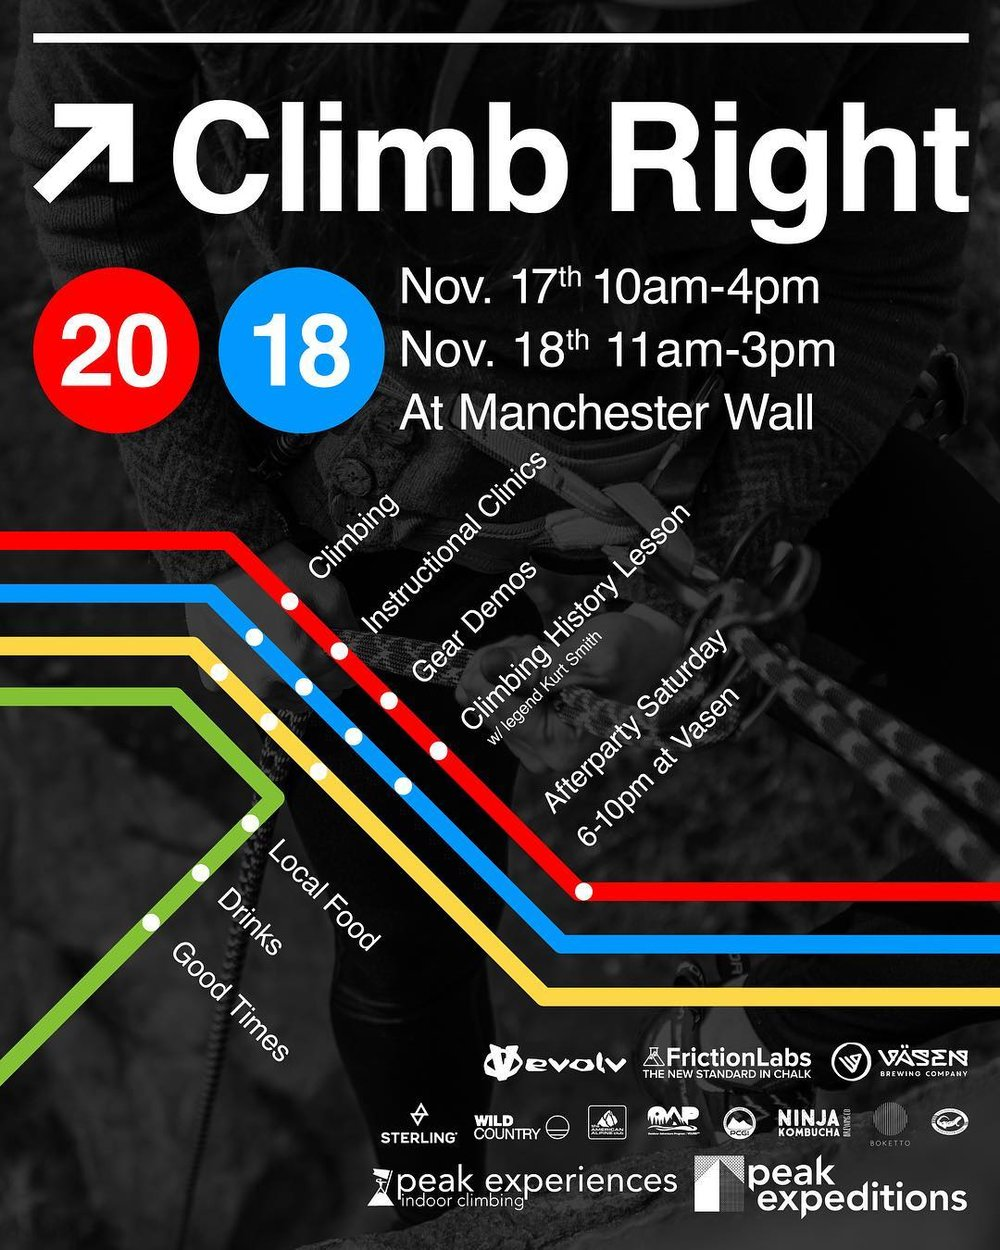 climb-right-nov-2018.jpg